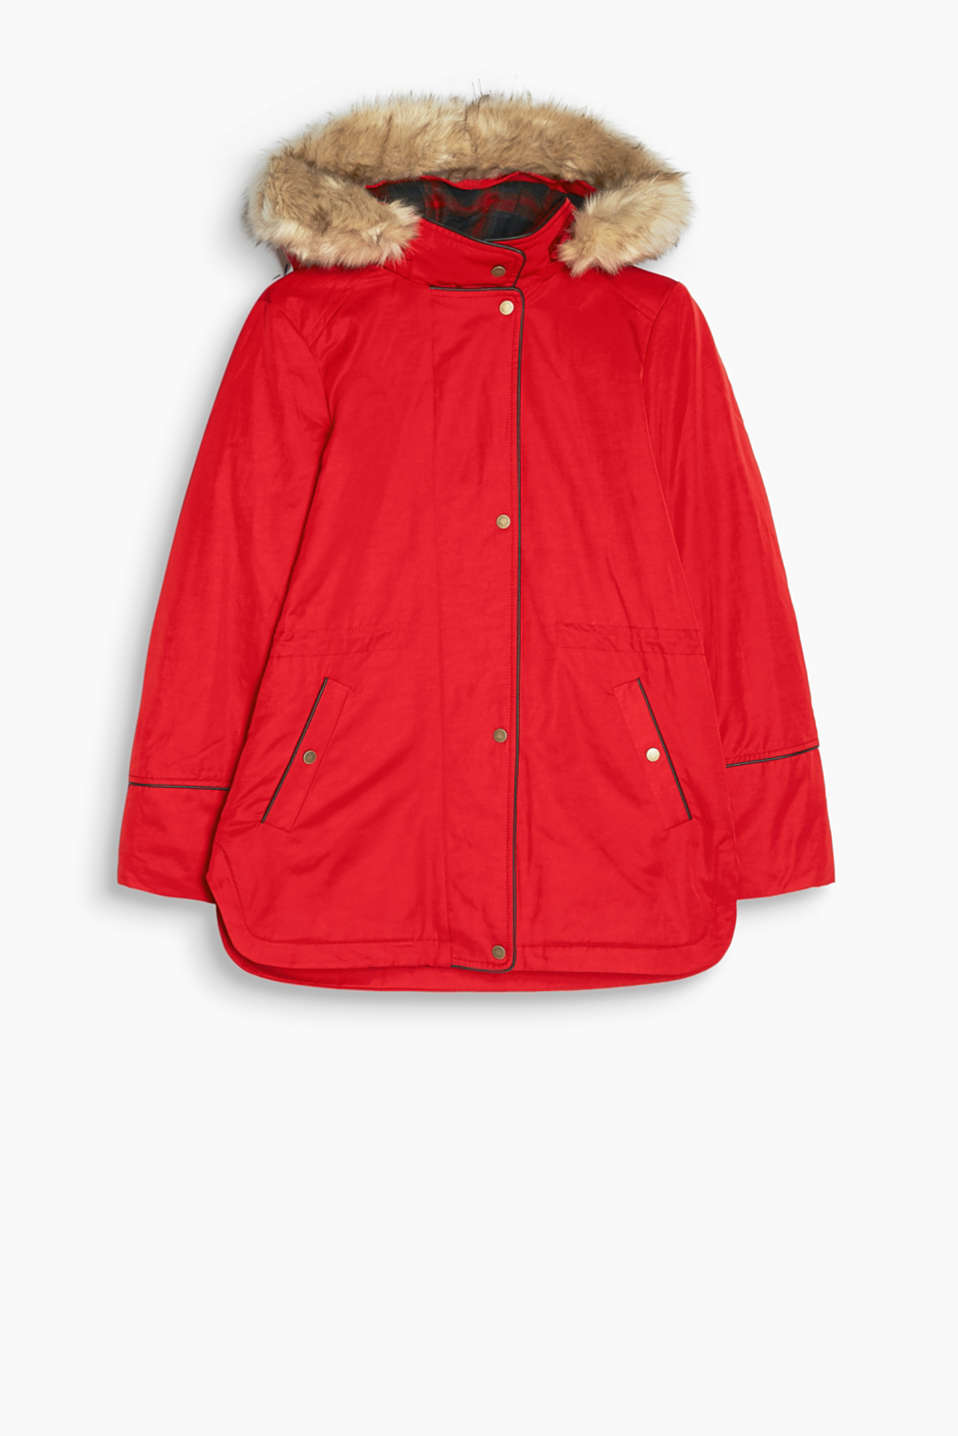 Cool, lined parka with a hood with a faux fur trim in a durable mix of materials